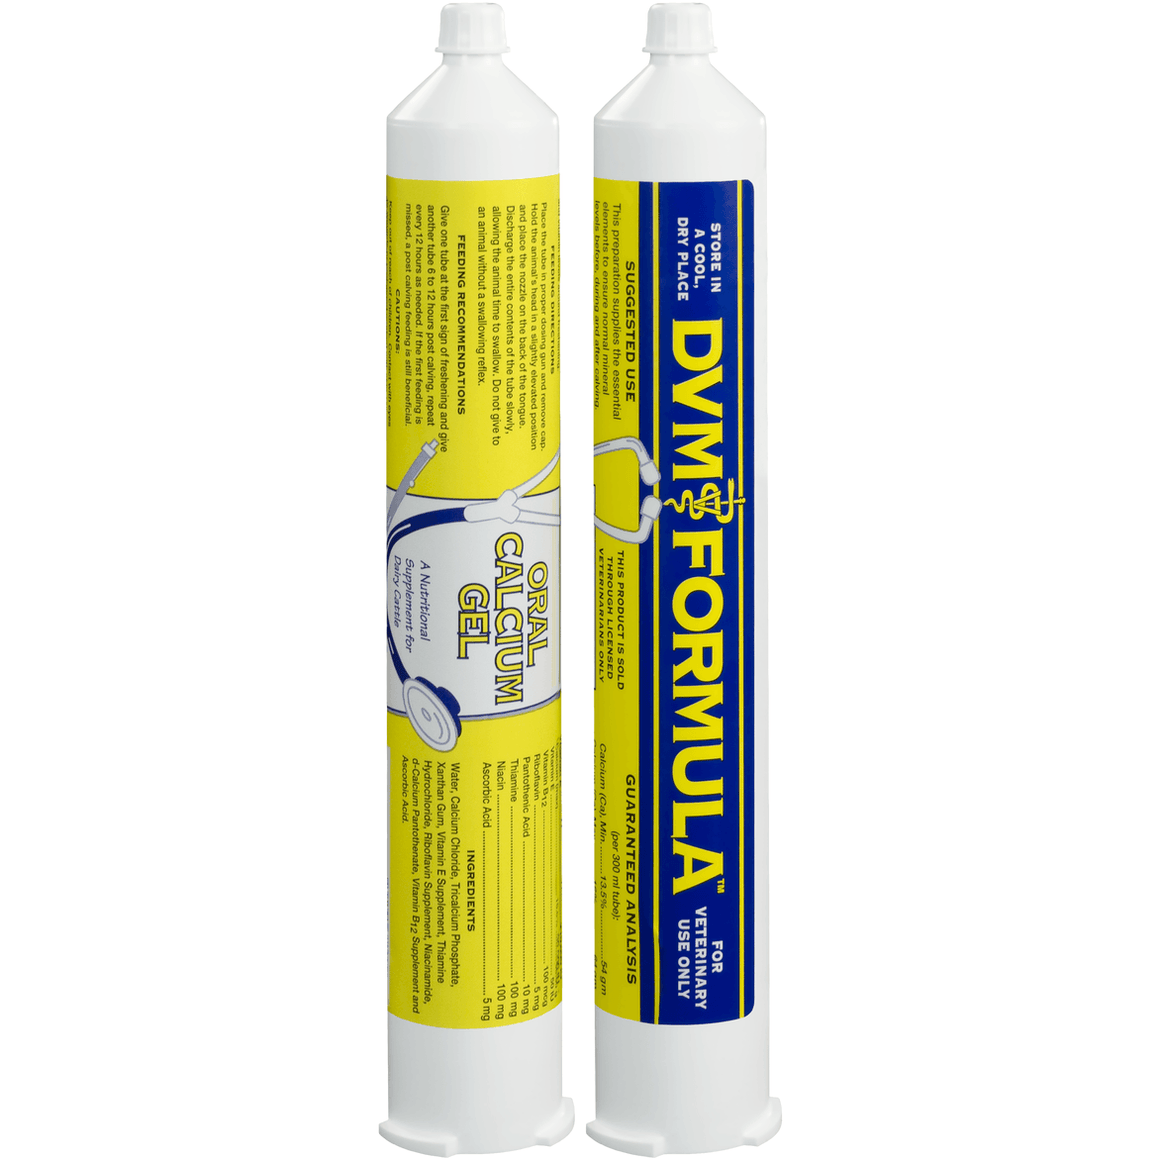 DVM equine oral calcium gel 300cc - Animal Health Warehouse